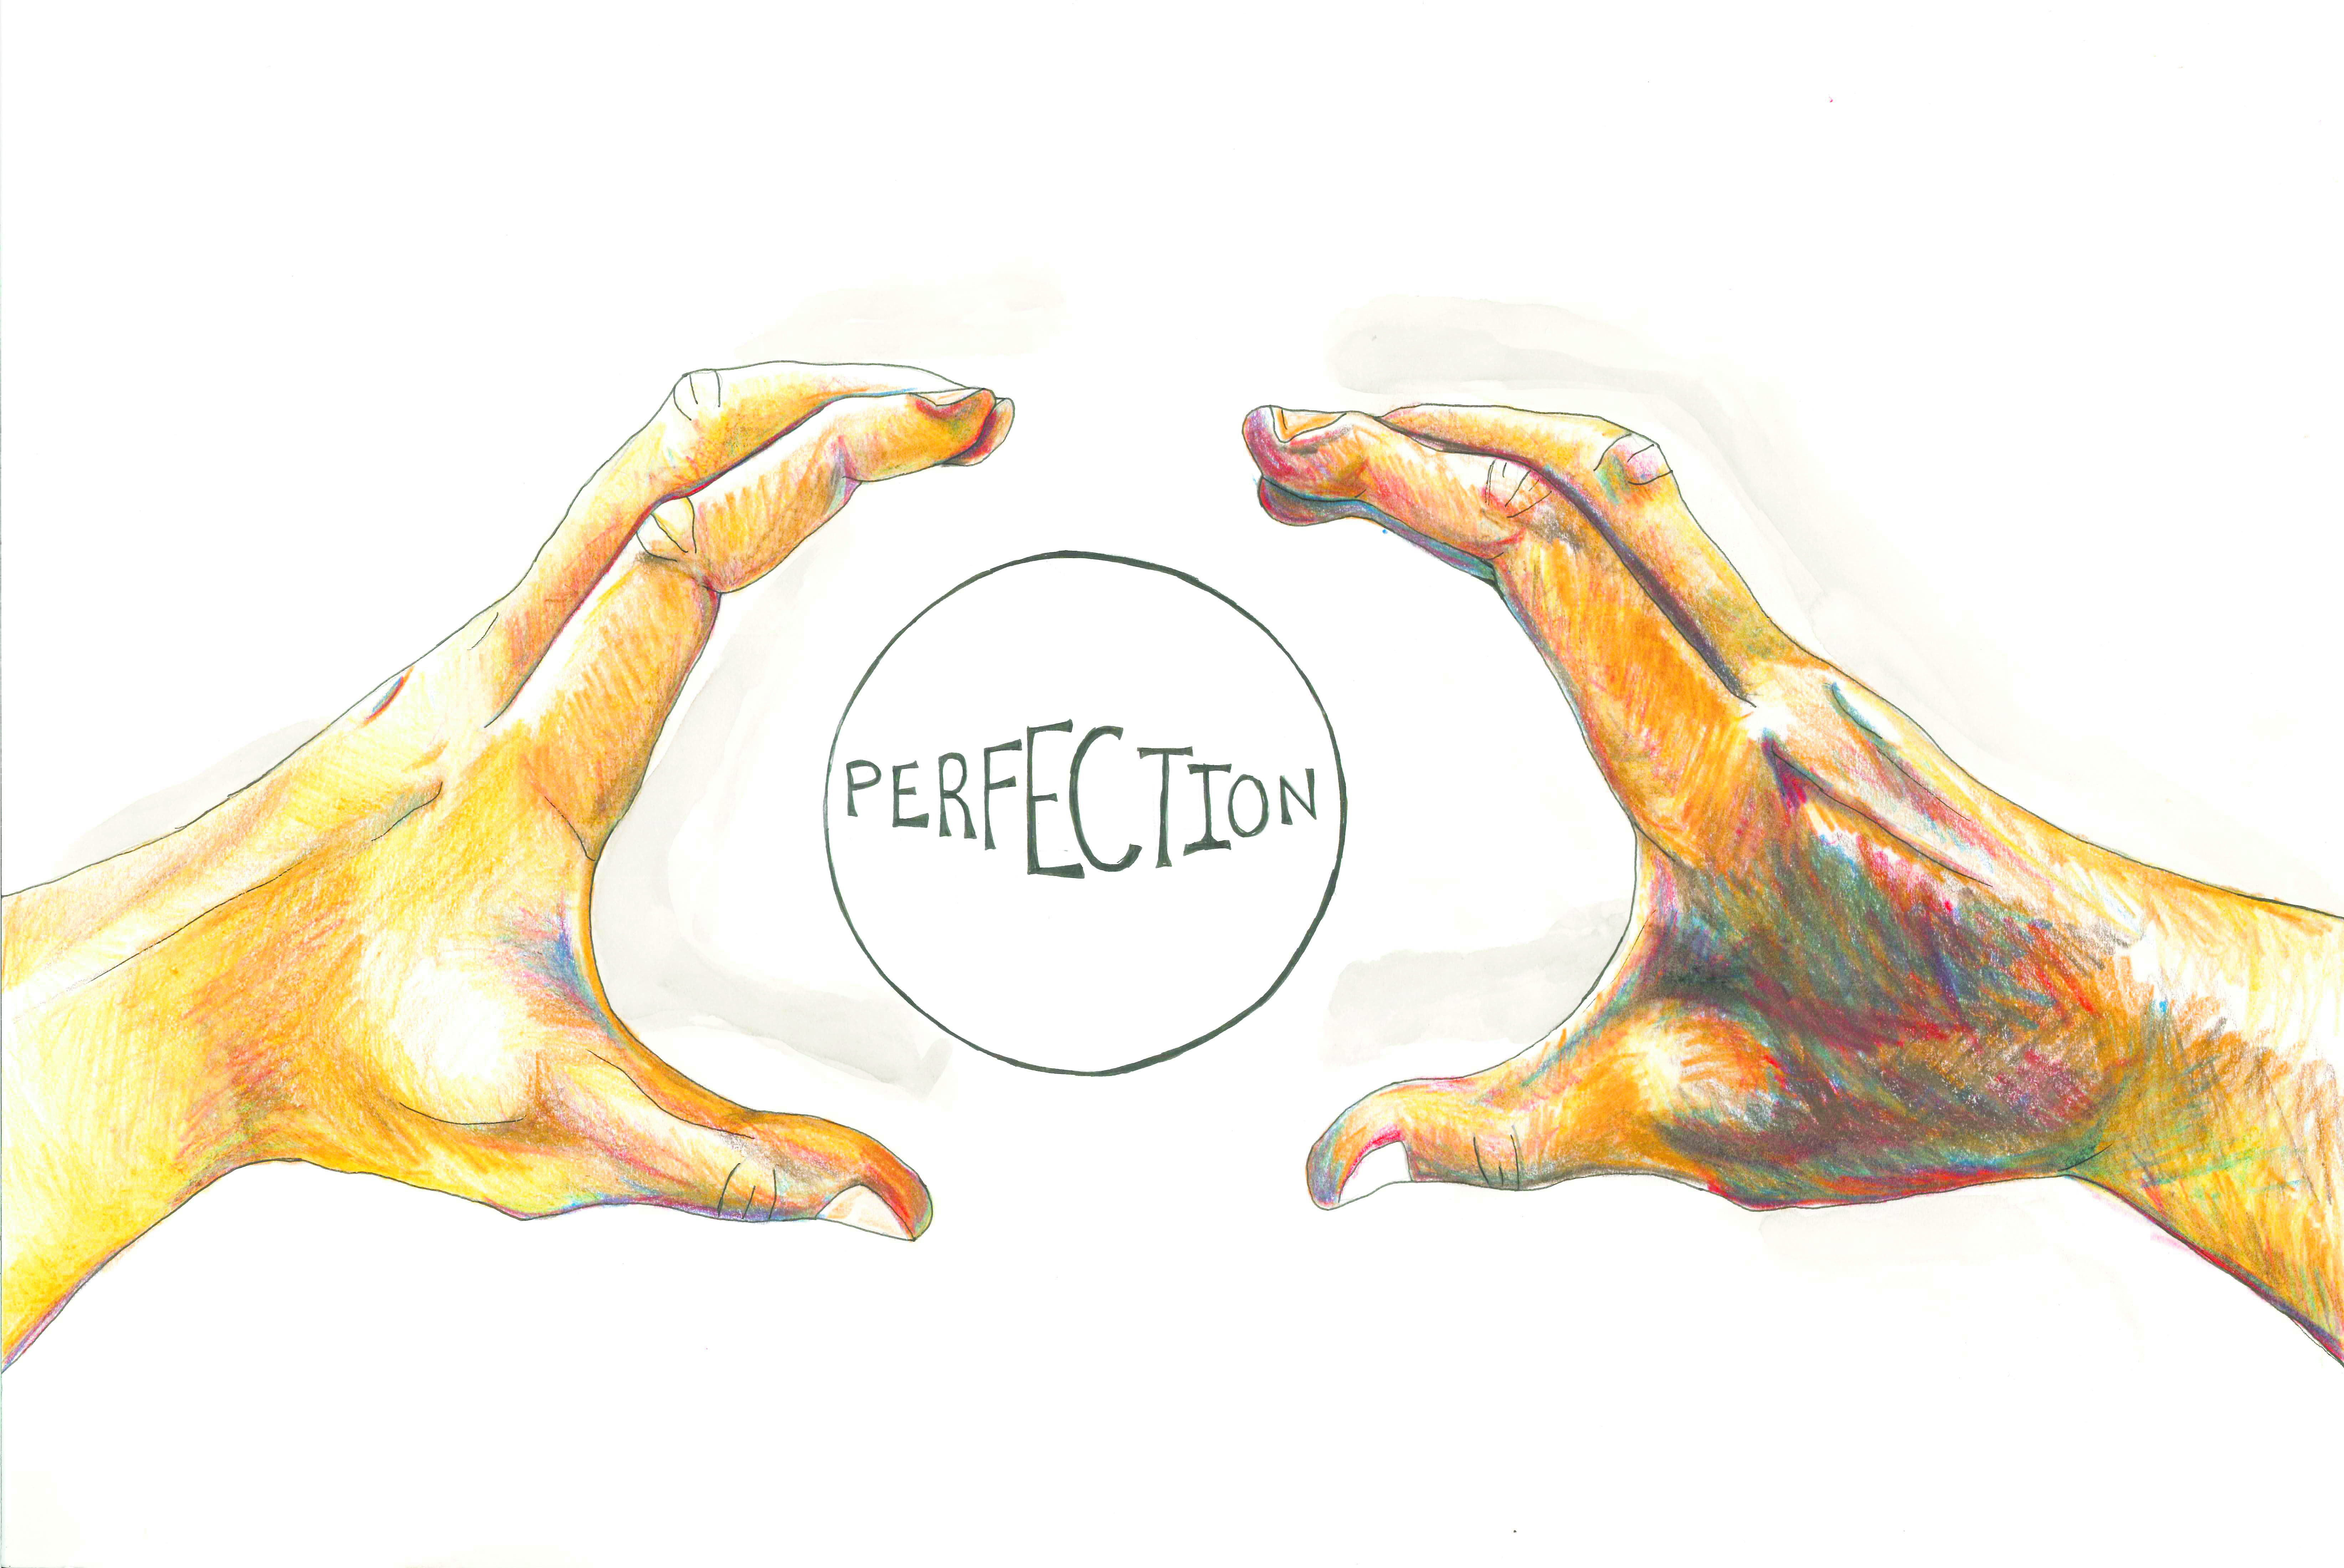 Perfectionism has its perks